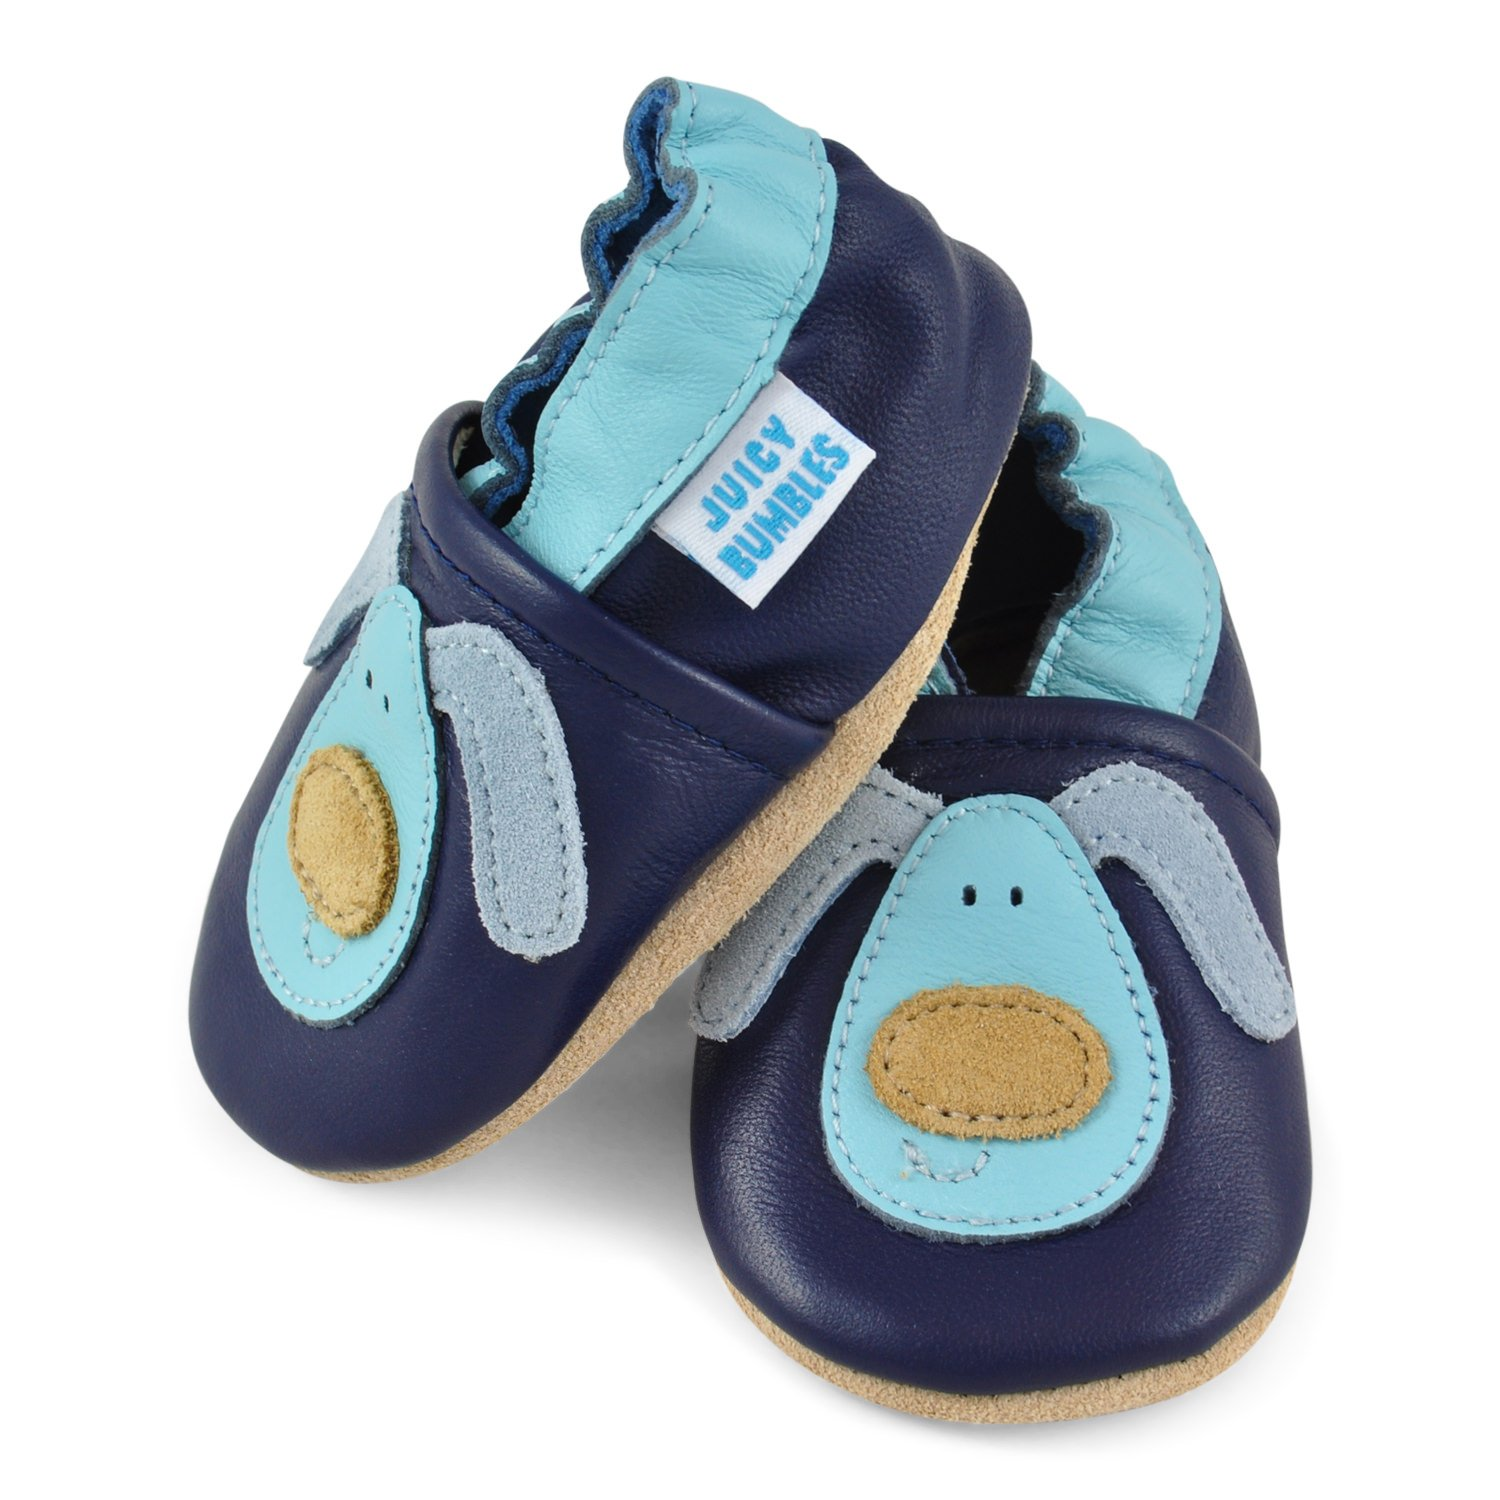 Soft Leather Baby Boy Shoes - Baby Shoes with Suede Soles - Dog 12-18 Months by Juicy Bumbles (Image #4)